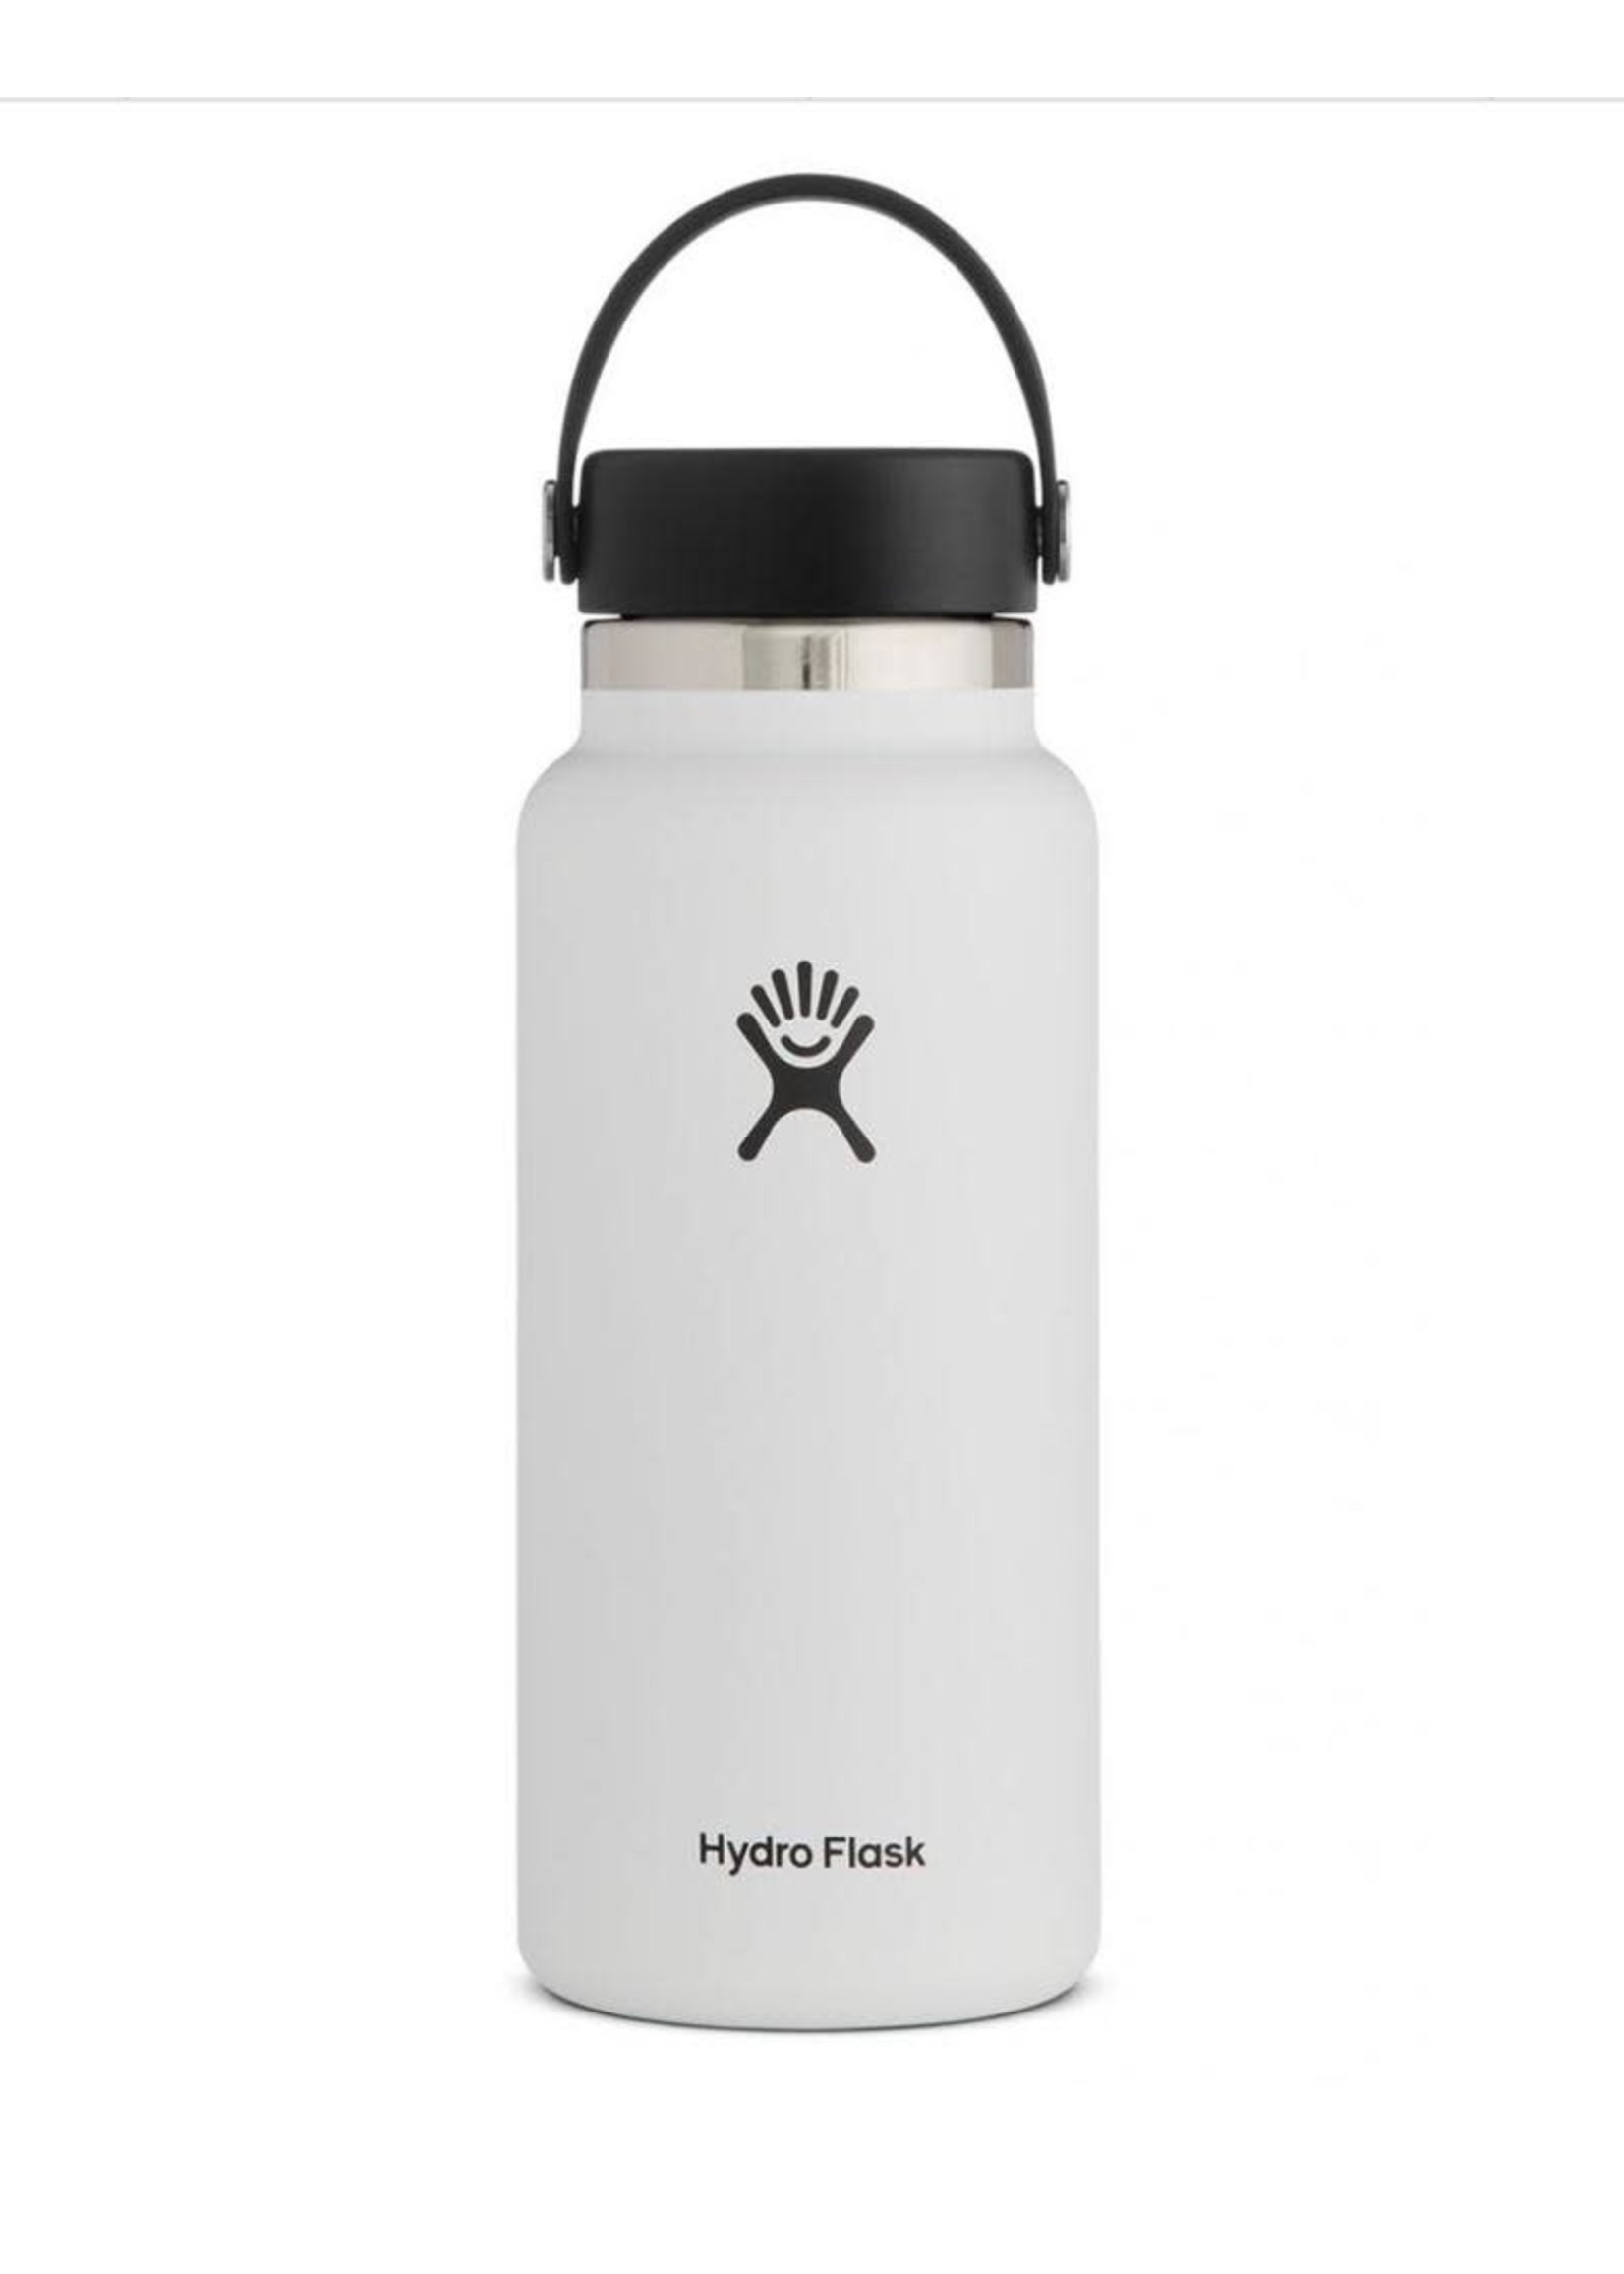 Hydro Flask Hydro Flask, 32 oz Wide Mouth 2.0  Flex Cap Insulated Stainless Steel Bottle in White